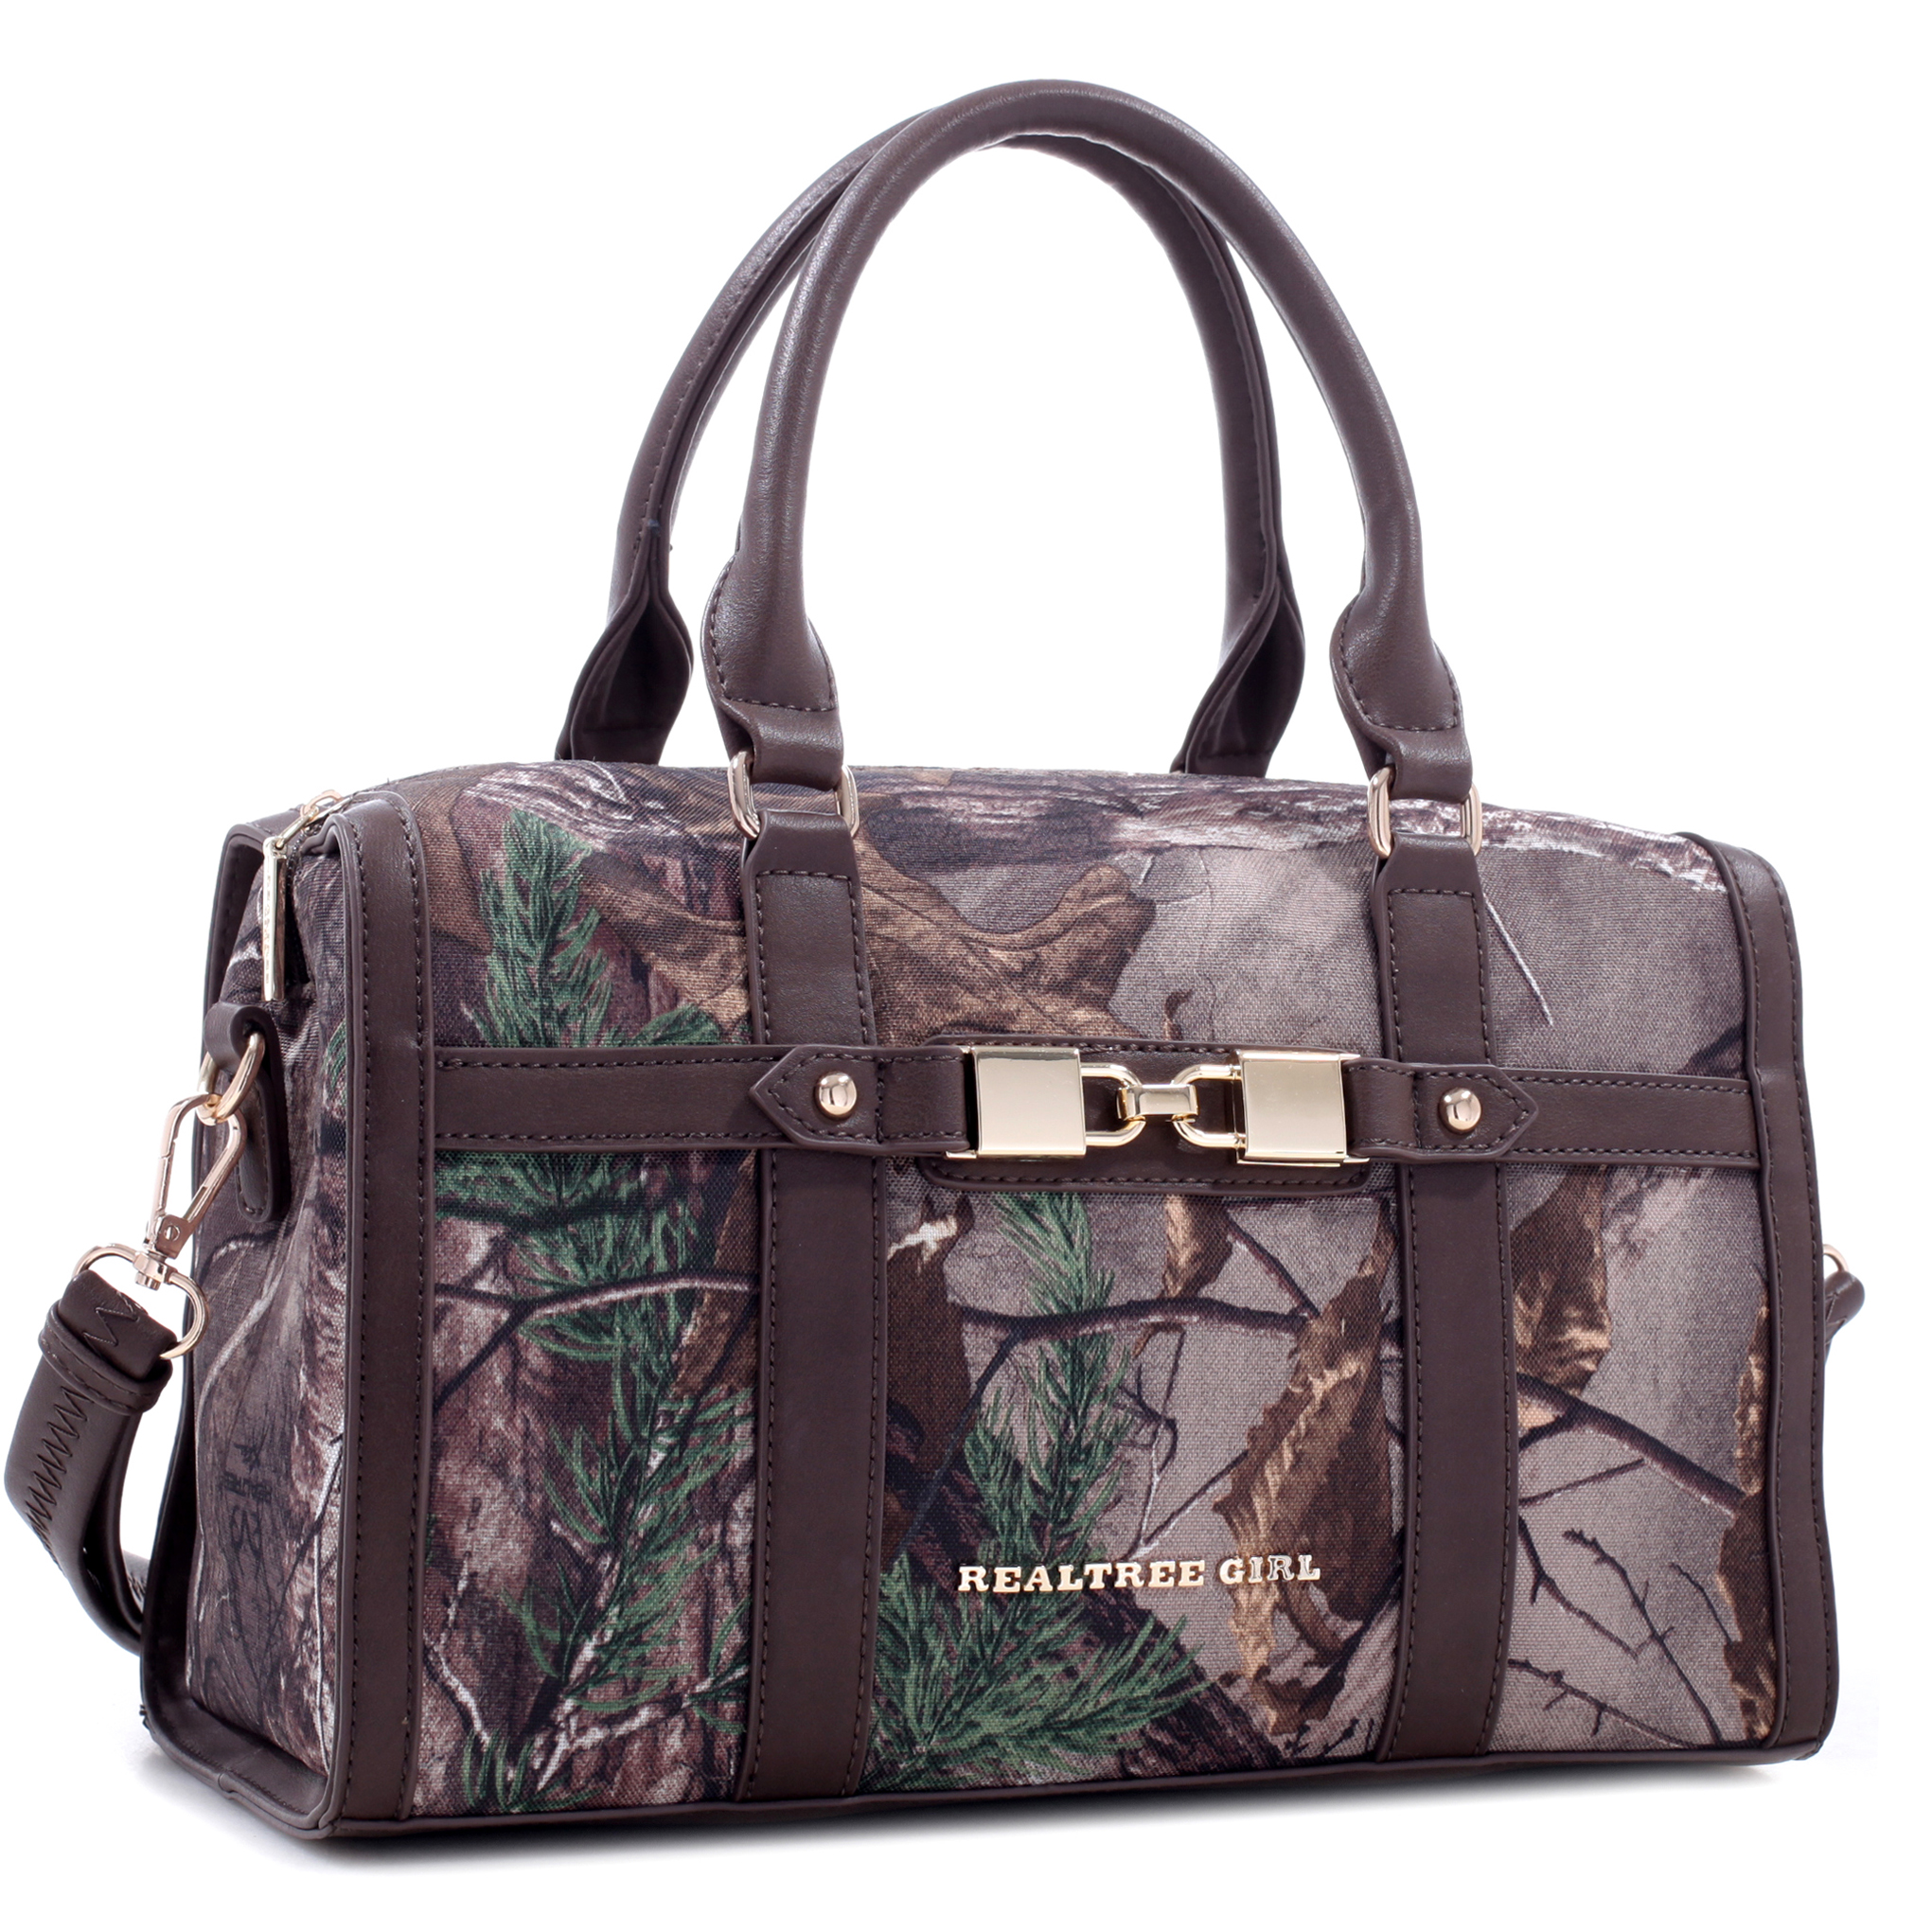 Realtree® Girl Linked Padlock Barrel Satchel with Detachable Shoulder Strap